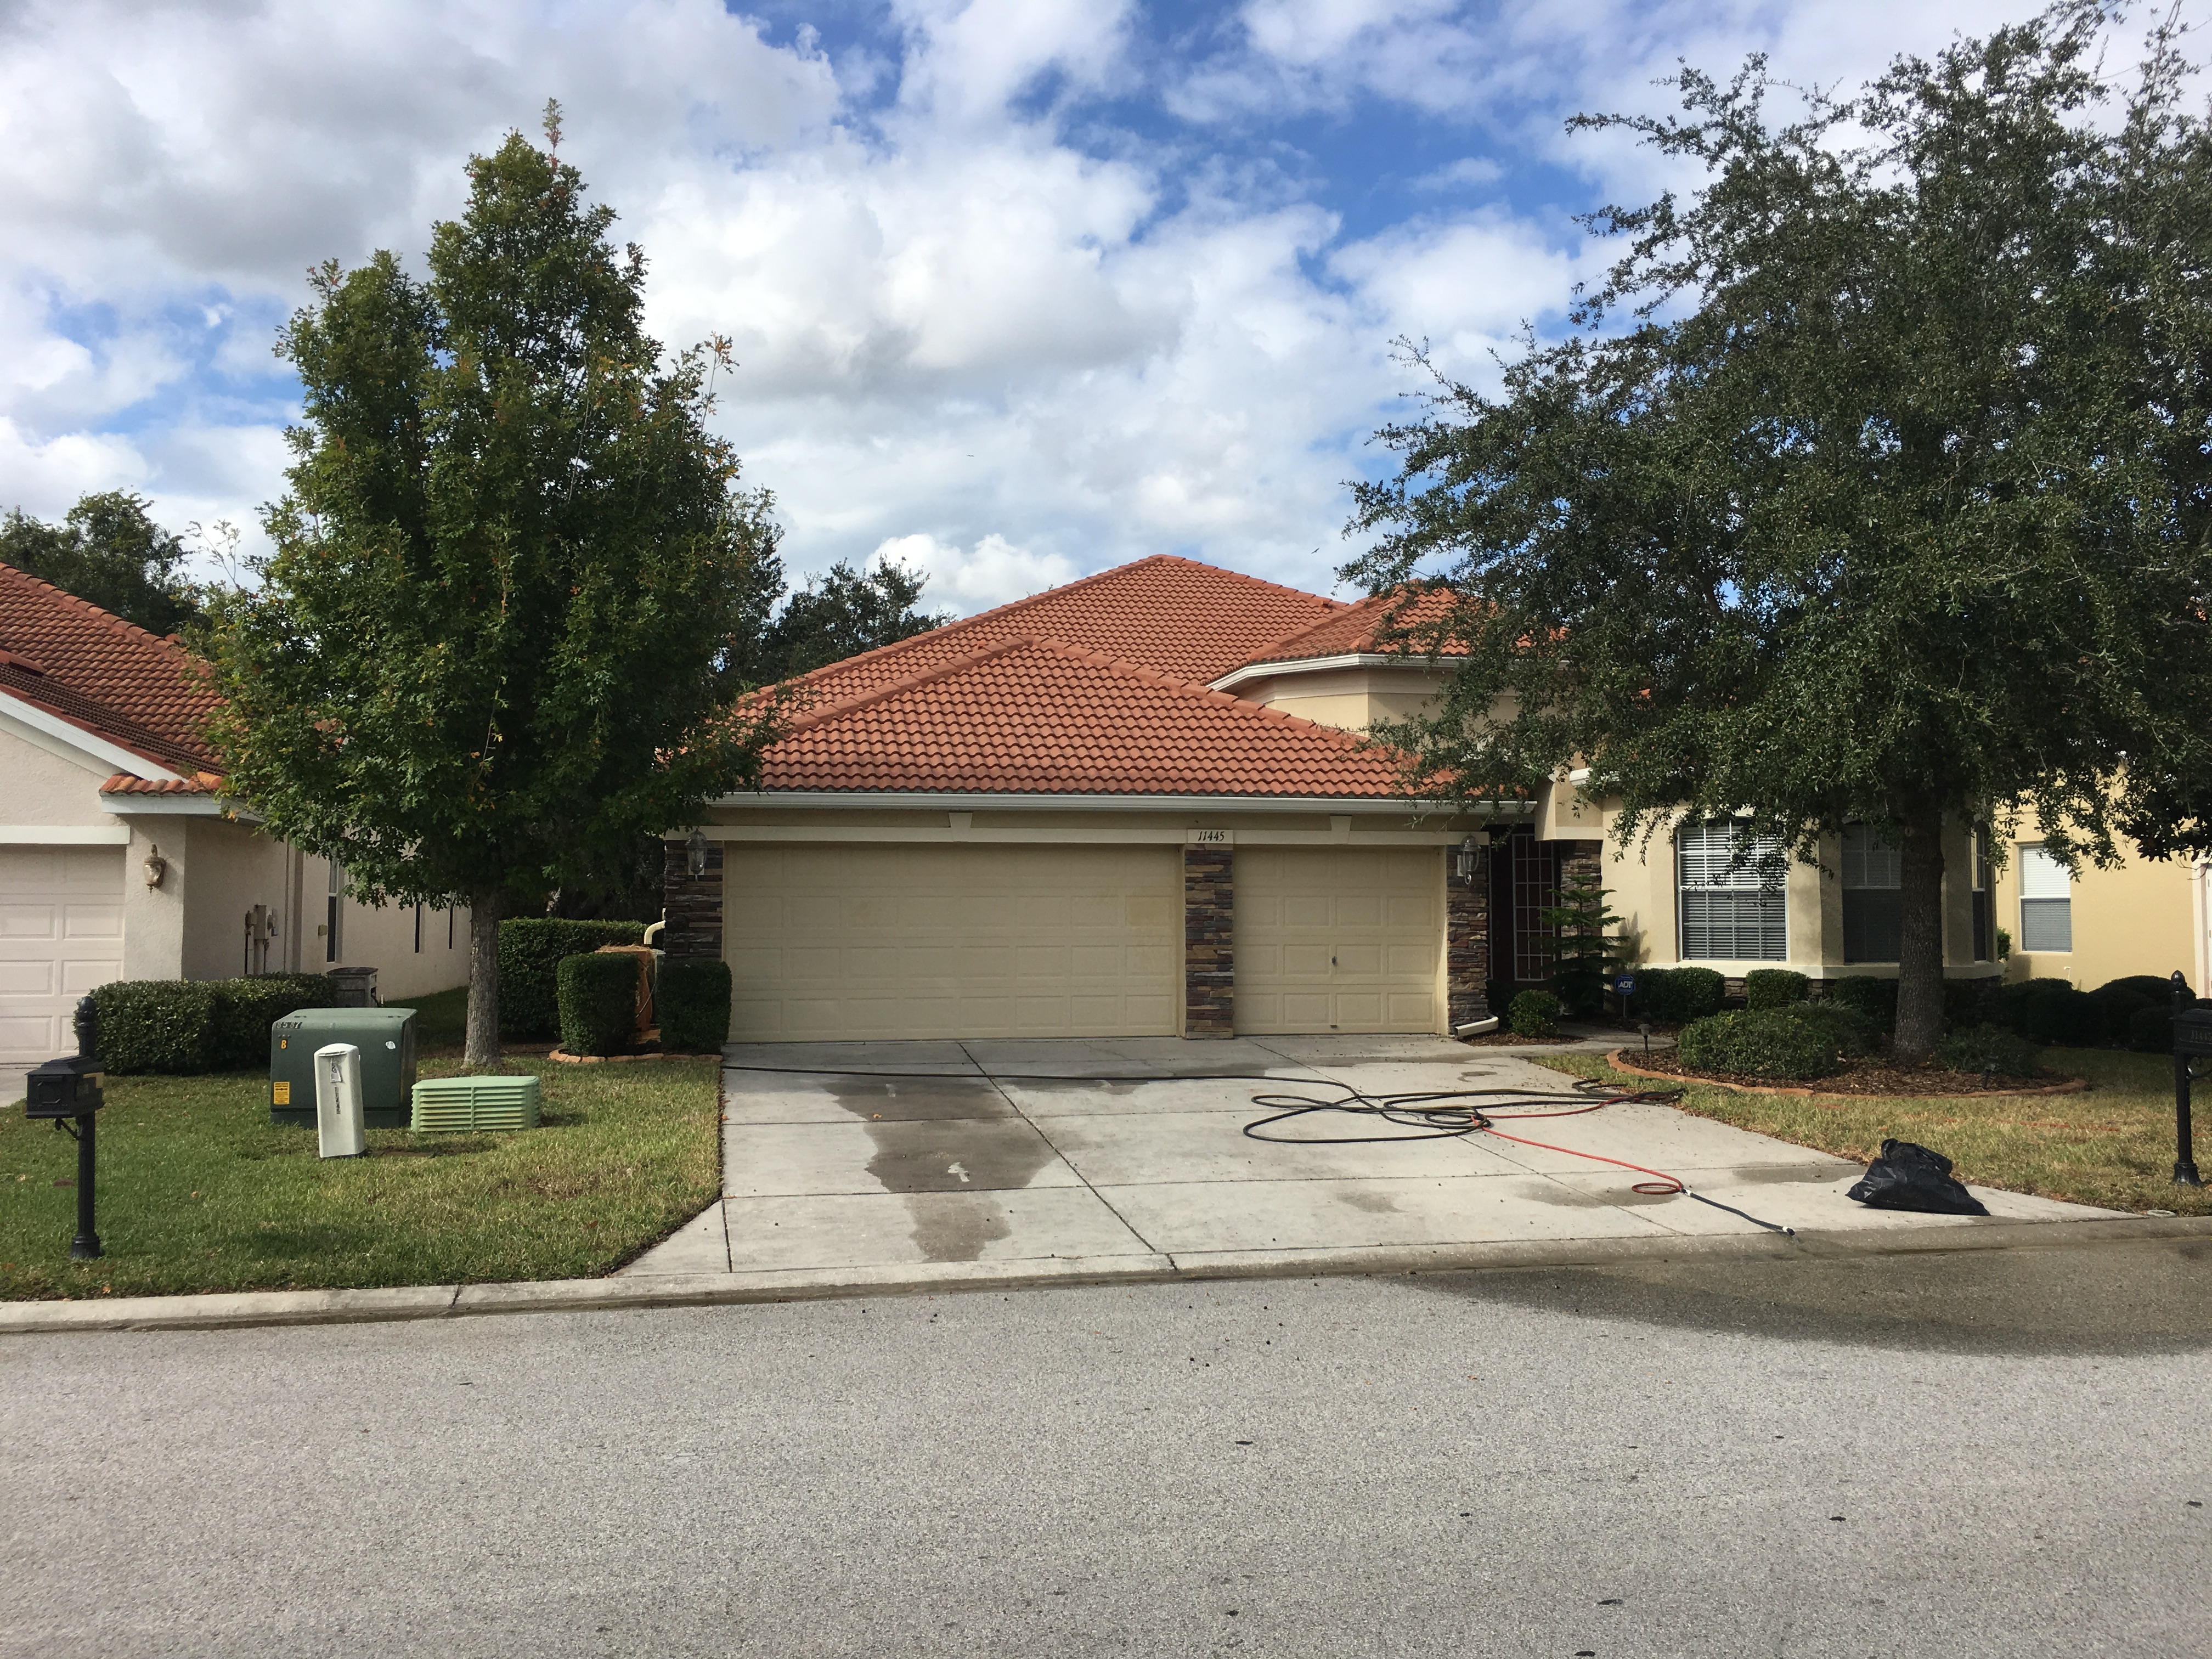 tile-roof-cleaning-new-tampa-fl.jpg